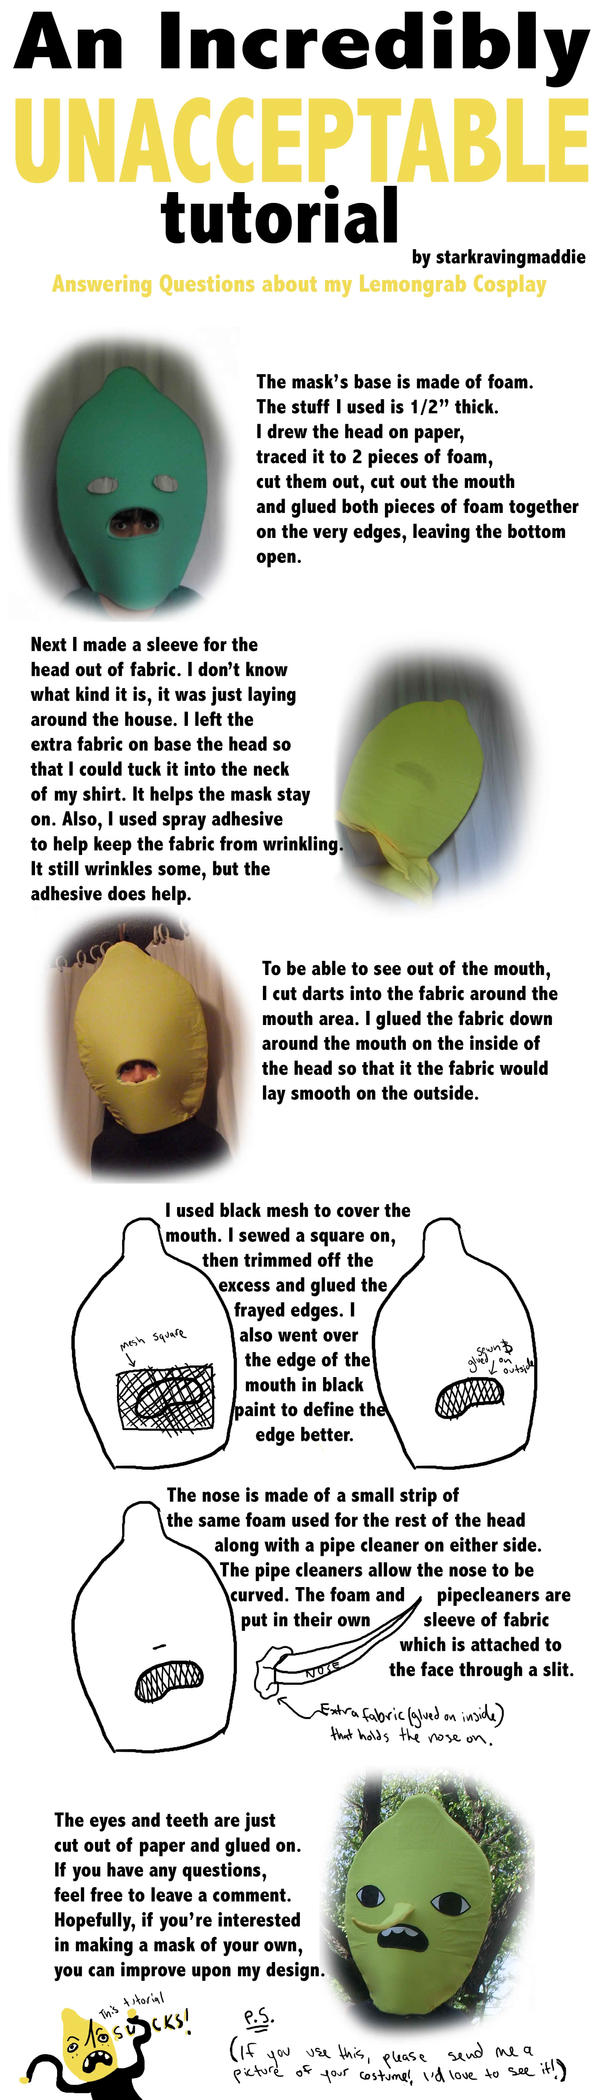 Lame Lemongrab tutorial by StarkRavingMaddie